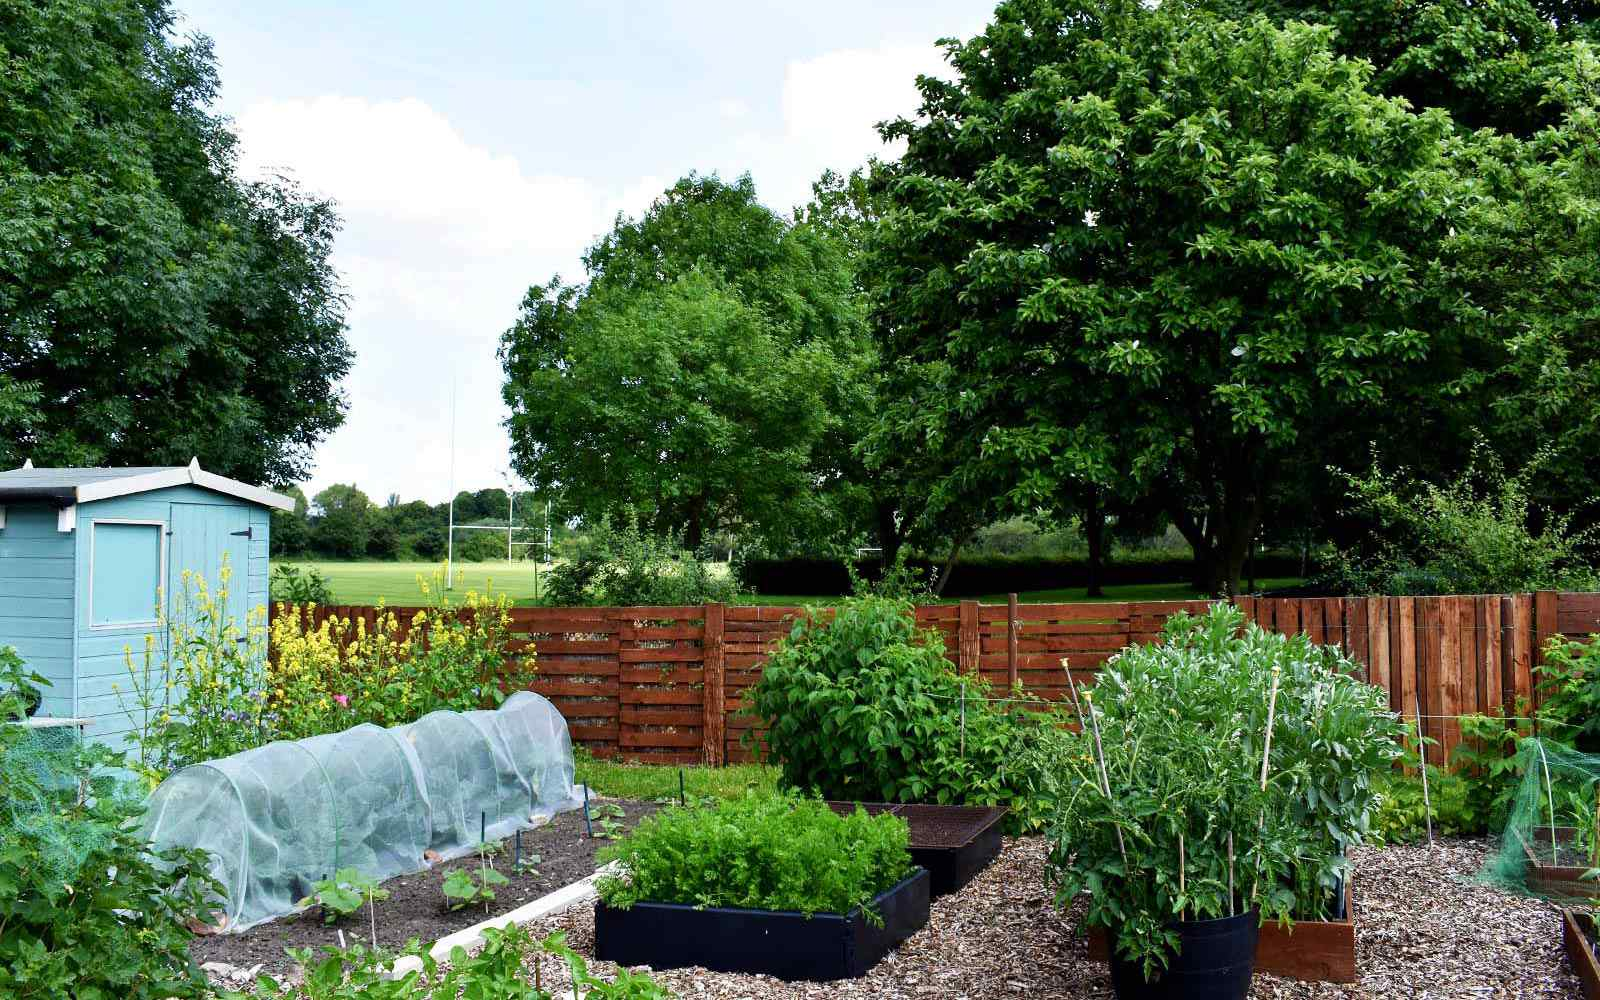 Plots at the York St John allotment site, growing a variety of plants